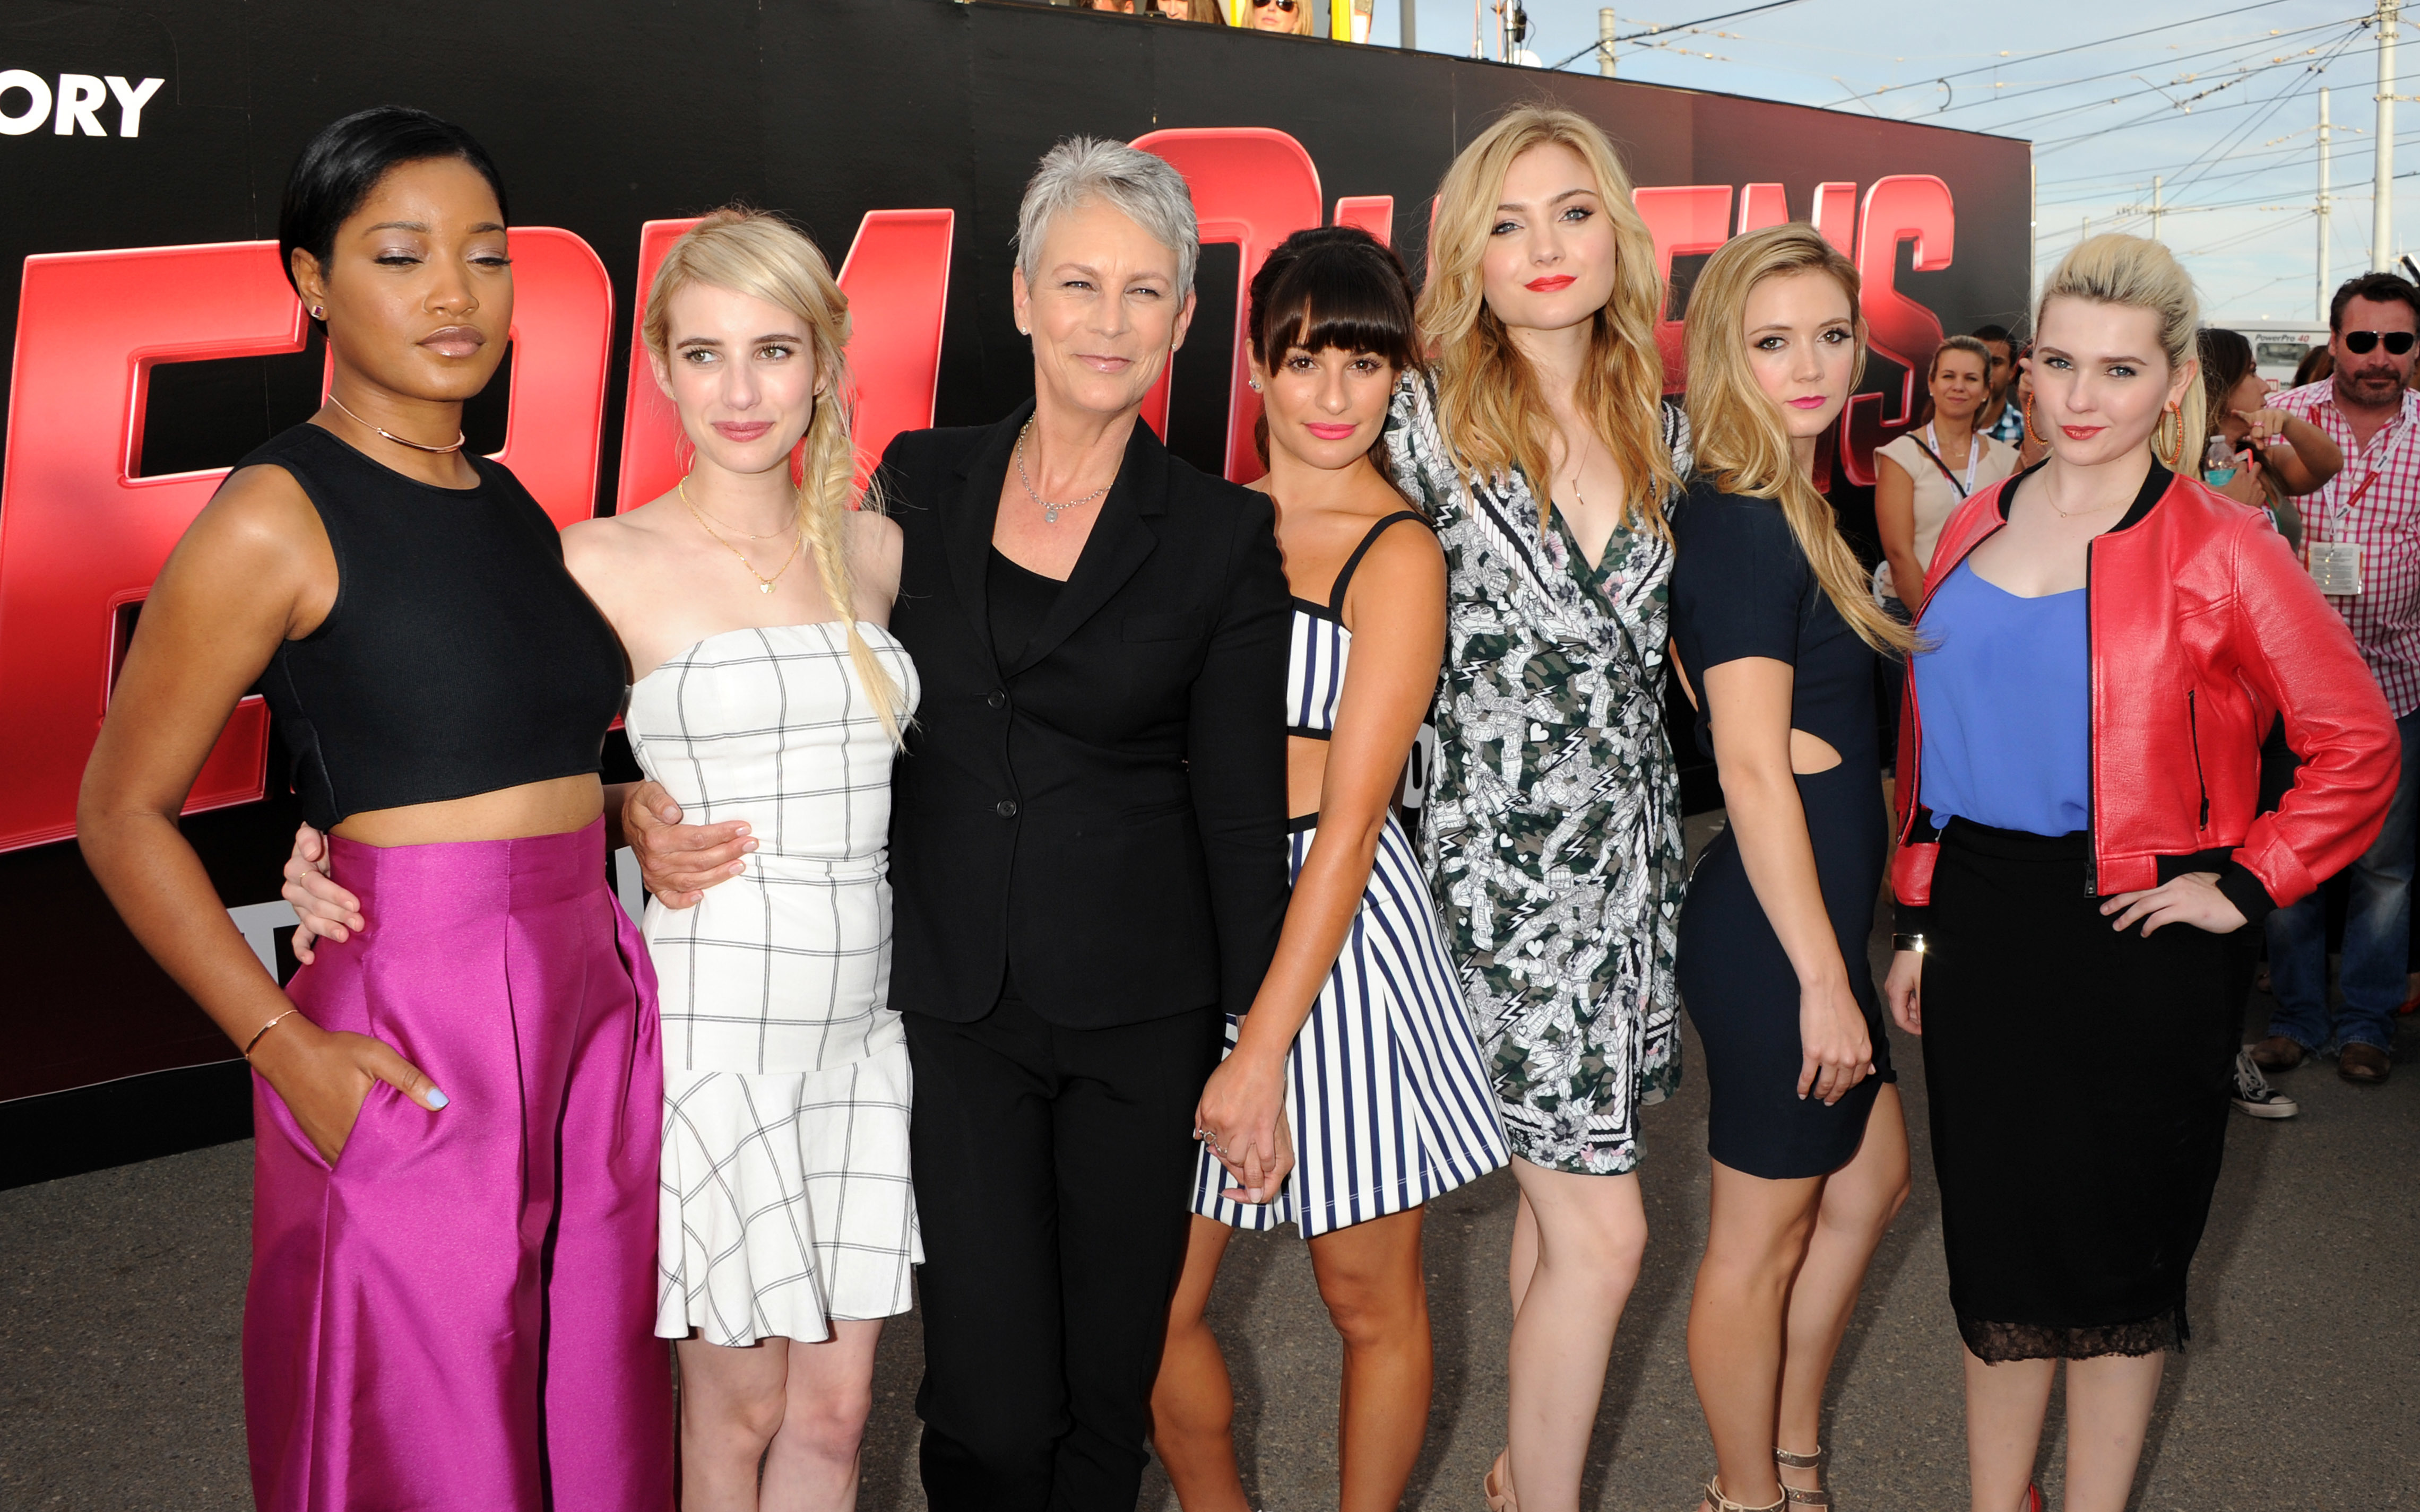 """Keke Palmer, Emma Roberts, Lea Michele, Skyler Samuels, Abigail Breslin, Billie Lourd and Jamie Lee Curtis attend the """"Scream Queens"""" photocall during Comic Con in San Diego on July 11, 2015."""